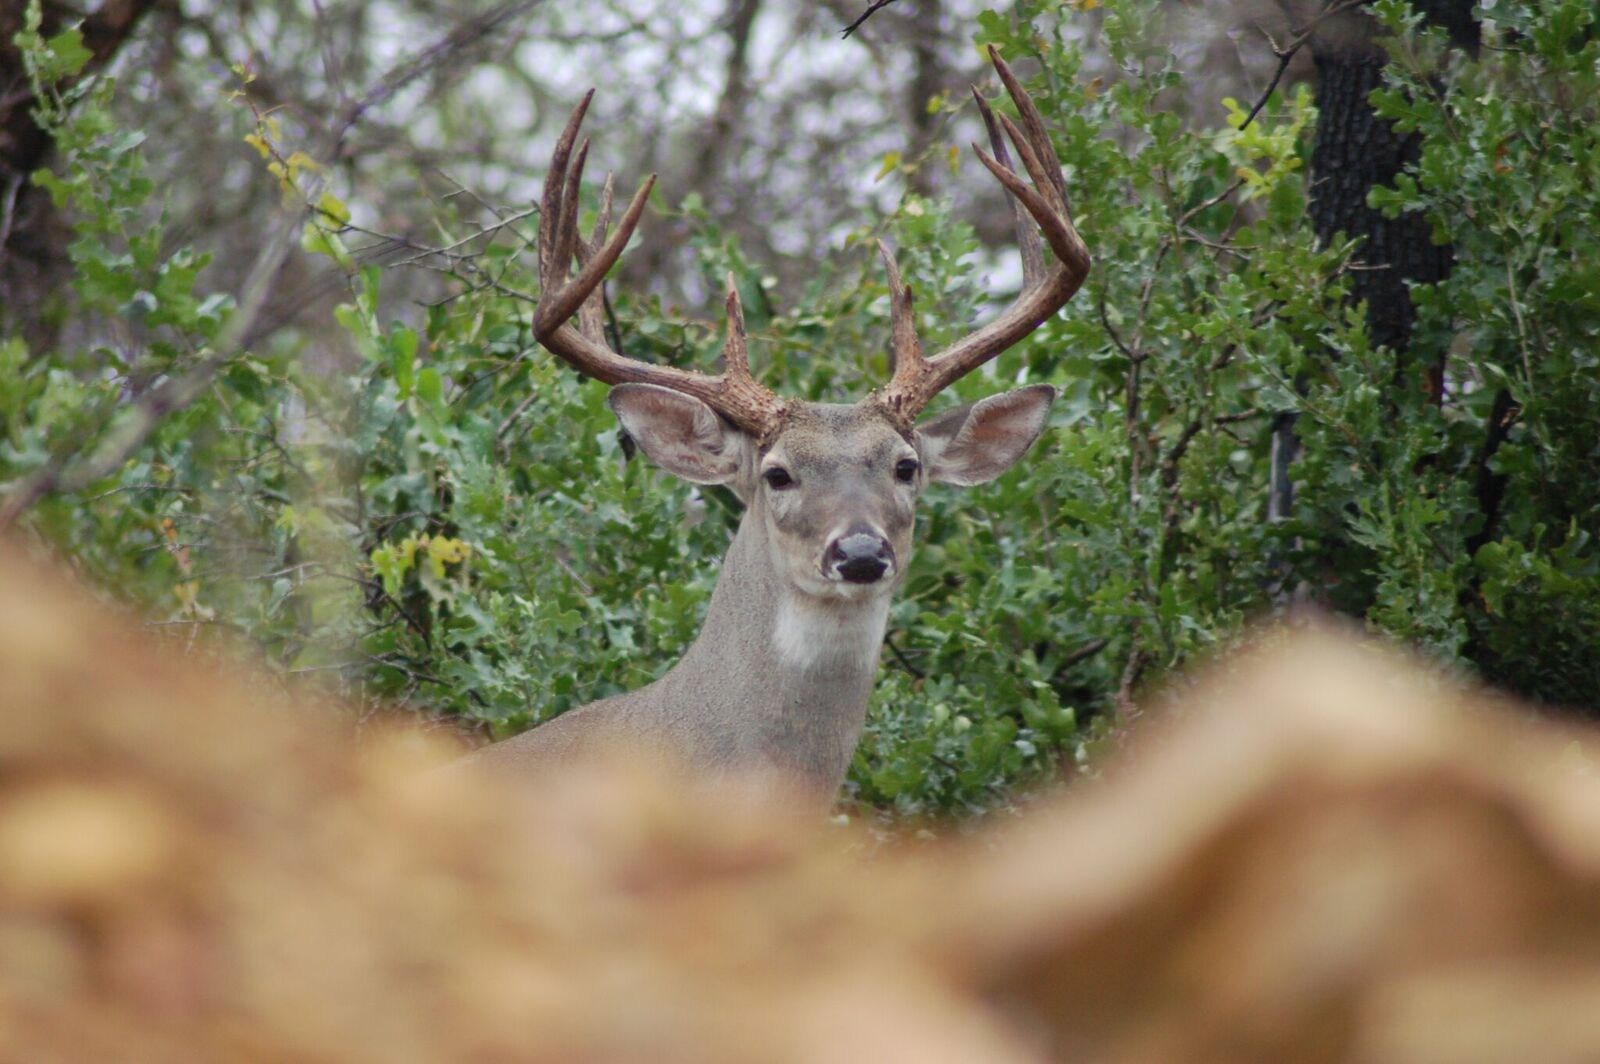 Bow hunters lose sleep about this time every year, anticipating a close encounter with a bruiser buck like this. Photo by Luke Clayton